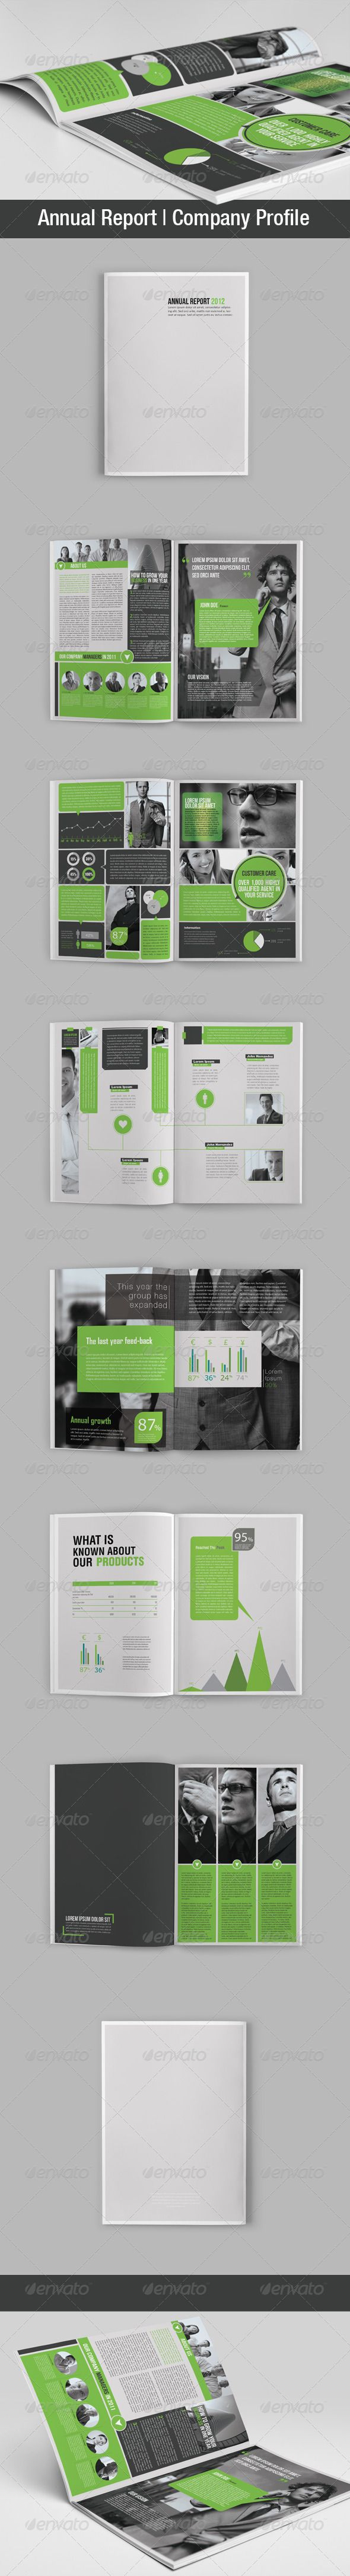 Print Templates - Annual Report | Company Profile | GraphicRiver